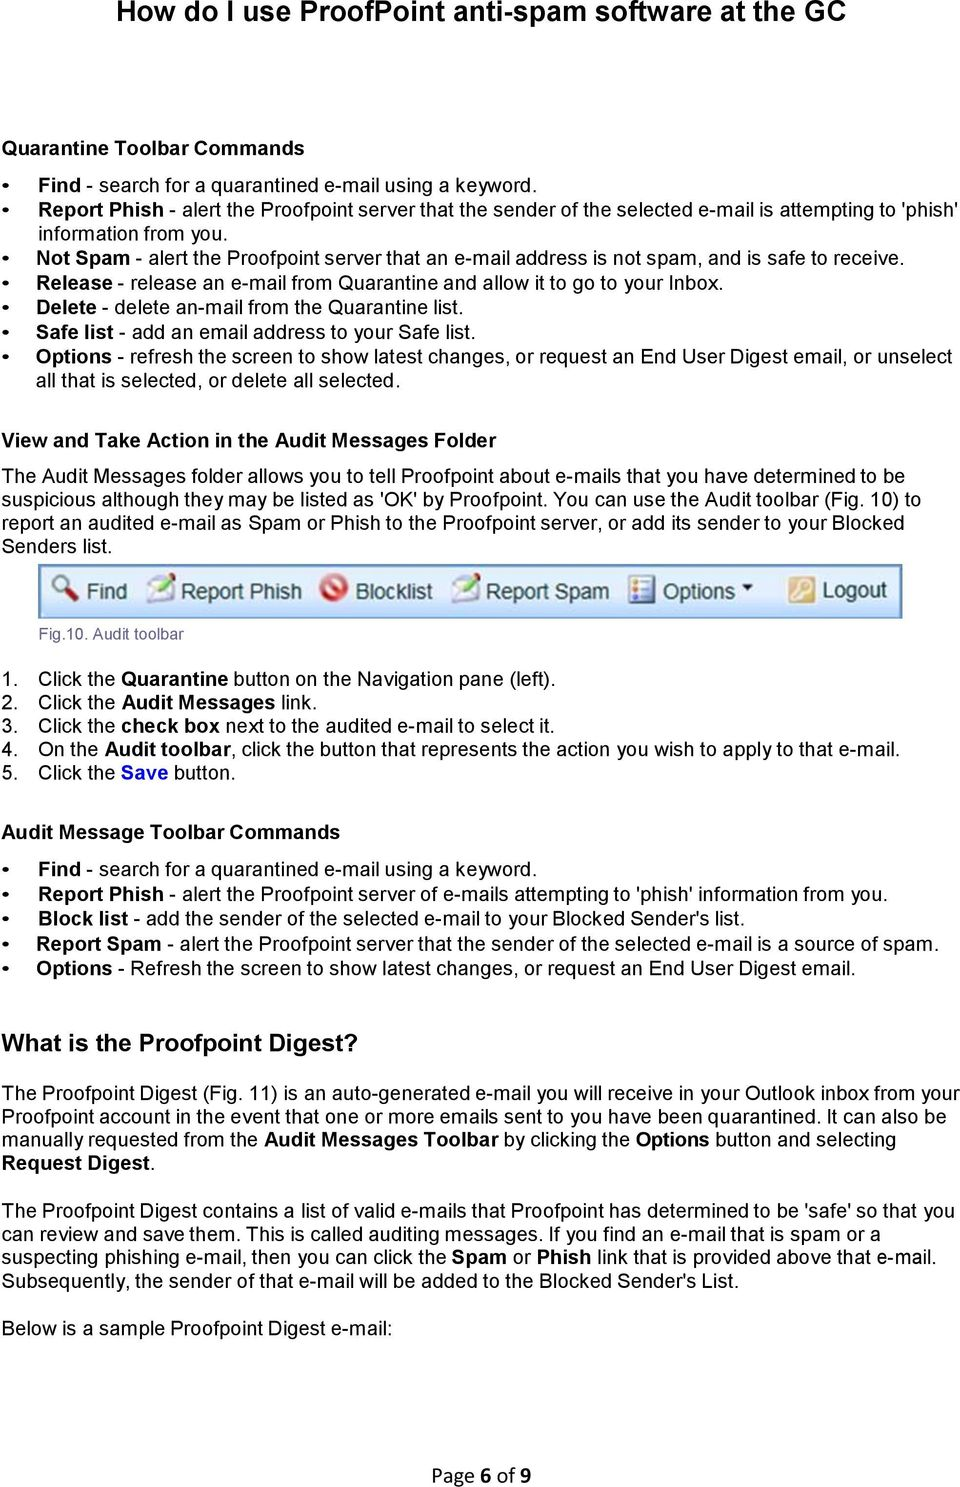 How do I use ProofPoint anti-spam software at the GC - PDF